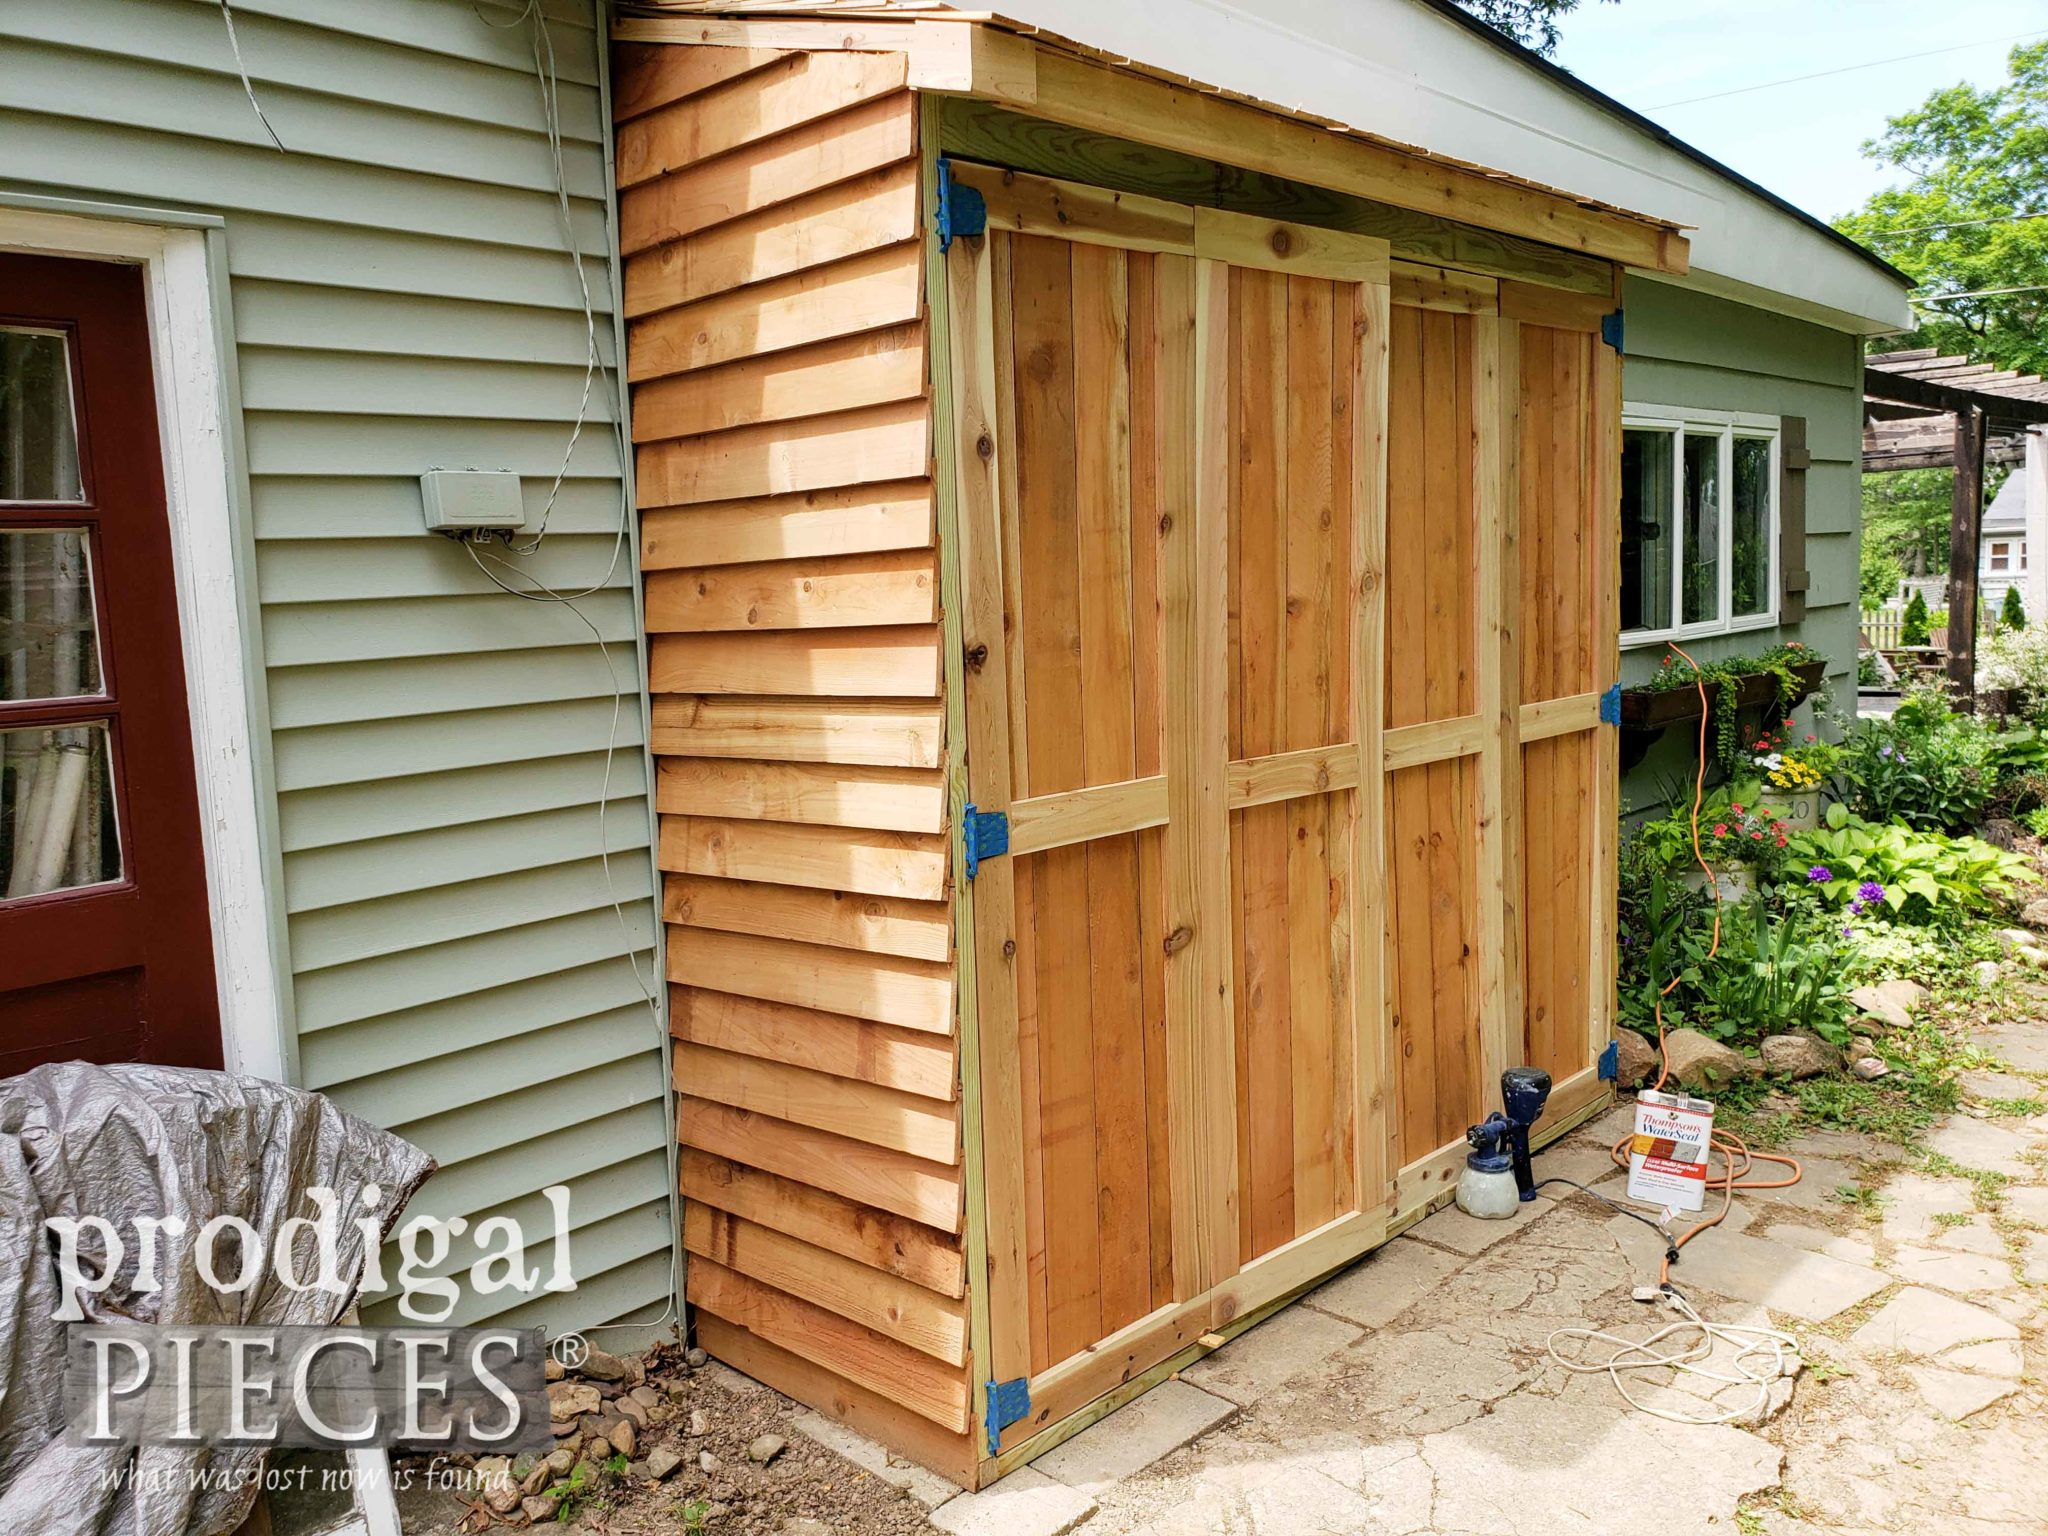 DIY Cedar Garden Shed with WaterSeal Protectant | Video demonstration by Larissa of Prodigal Pieces | prodigalpieces.com #prodigalpieces